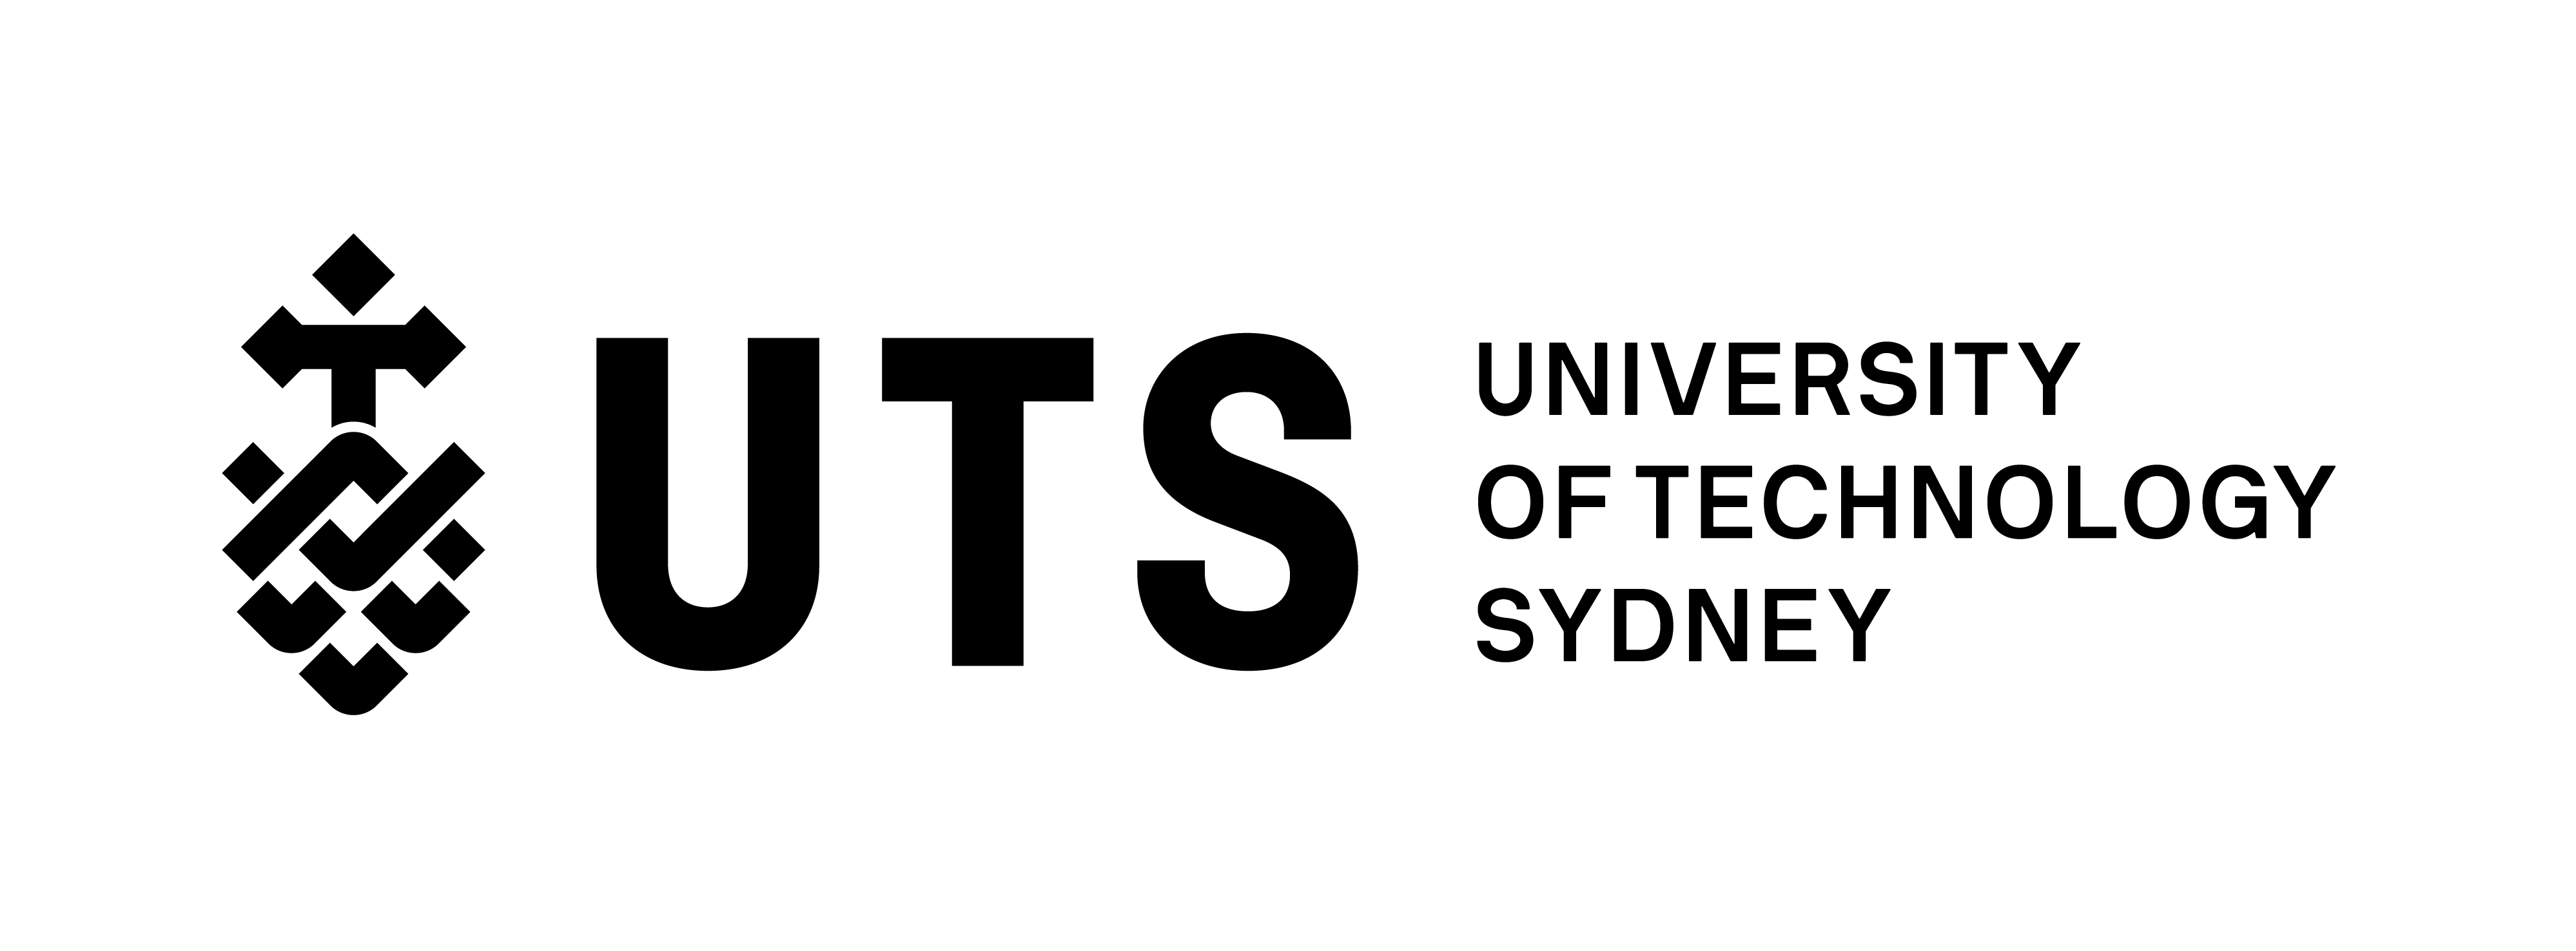 University of Technology Sydney - Graduate Certificate in Engineering